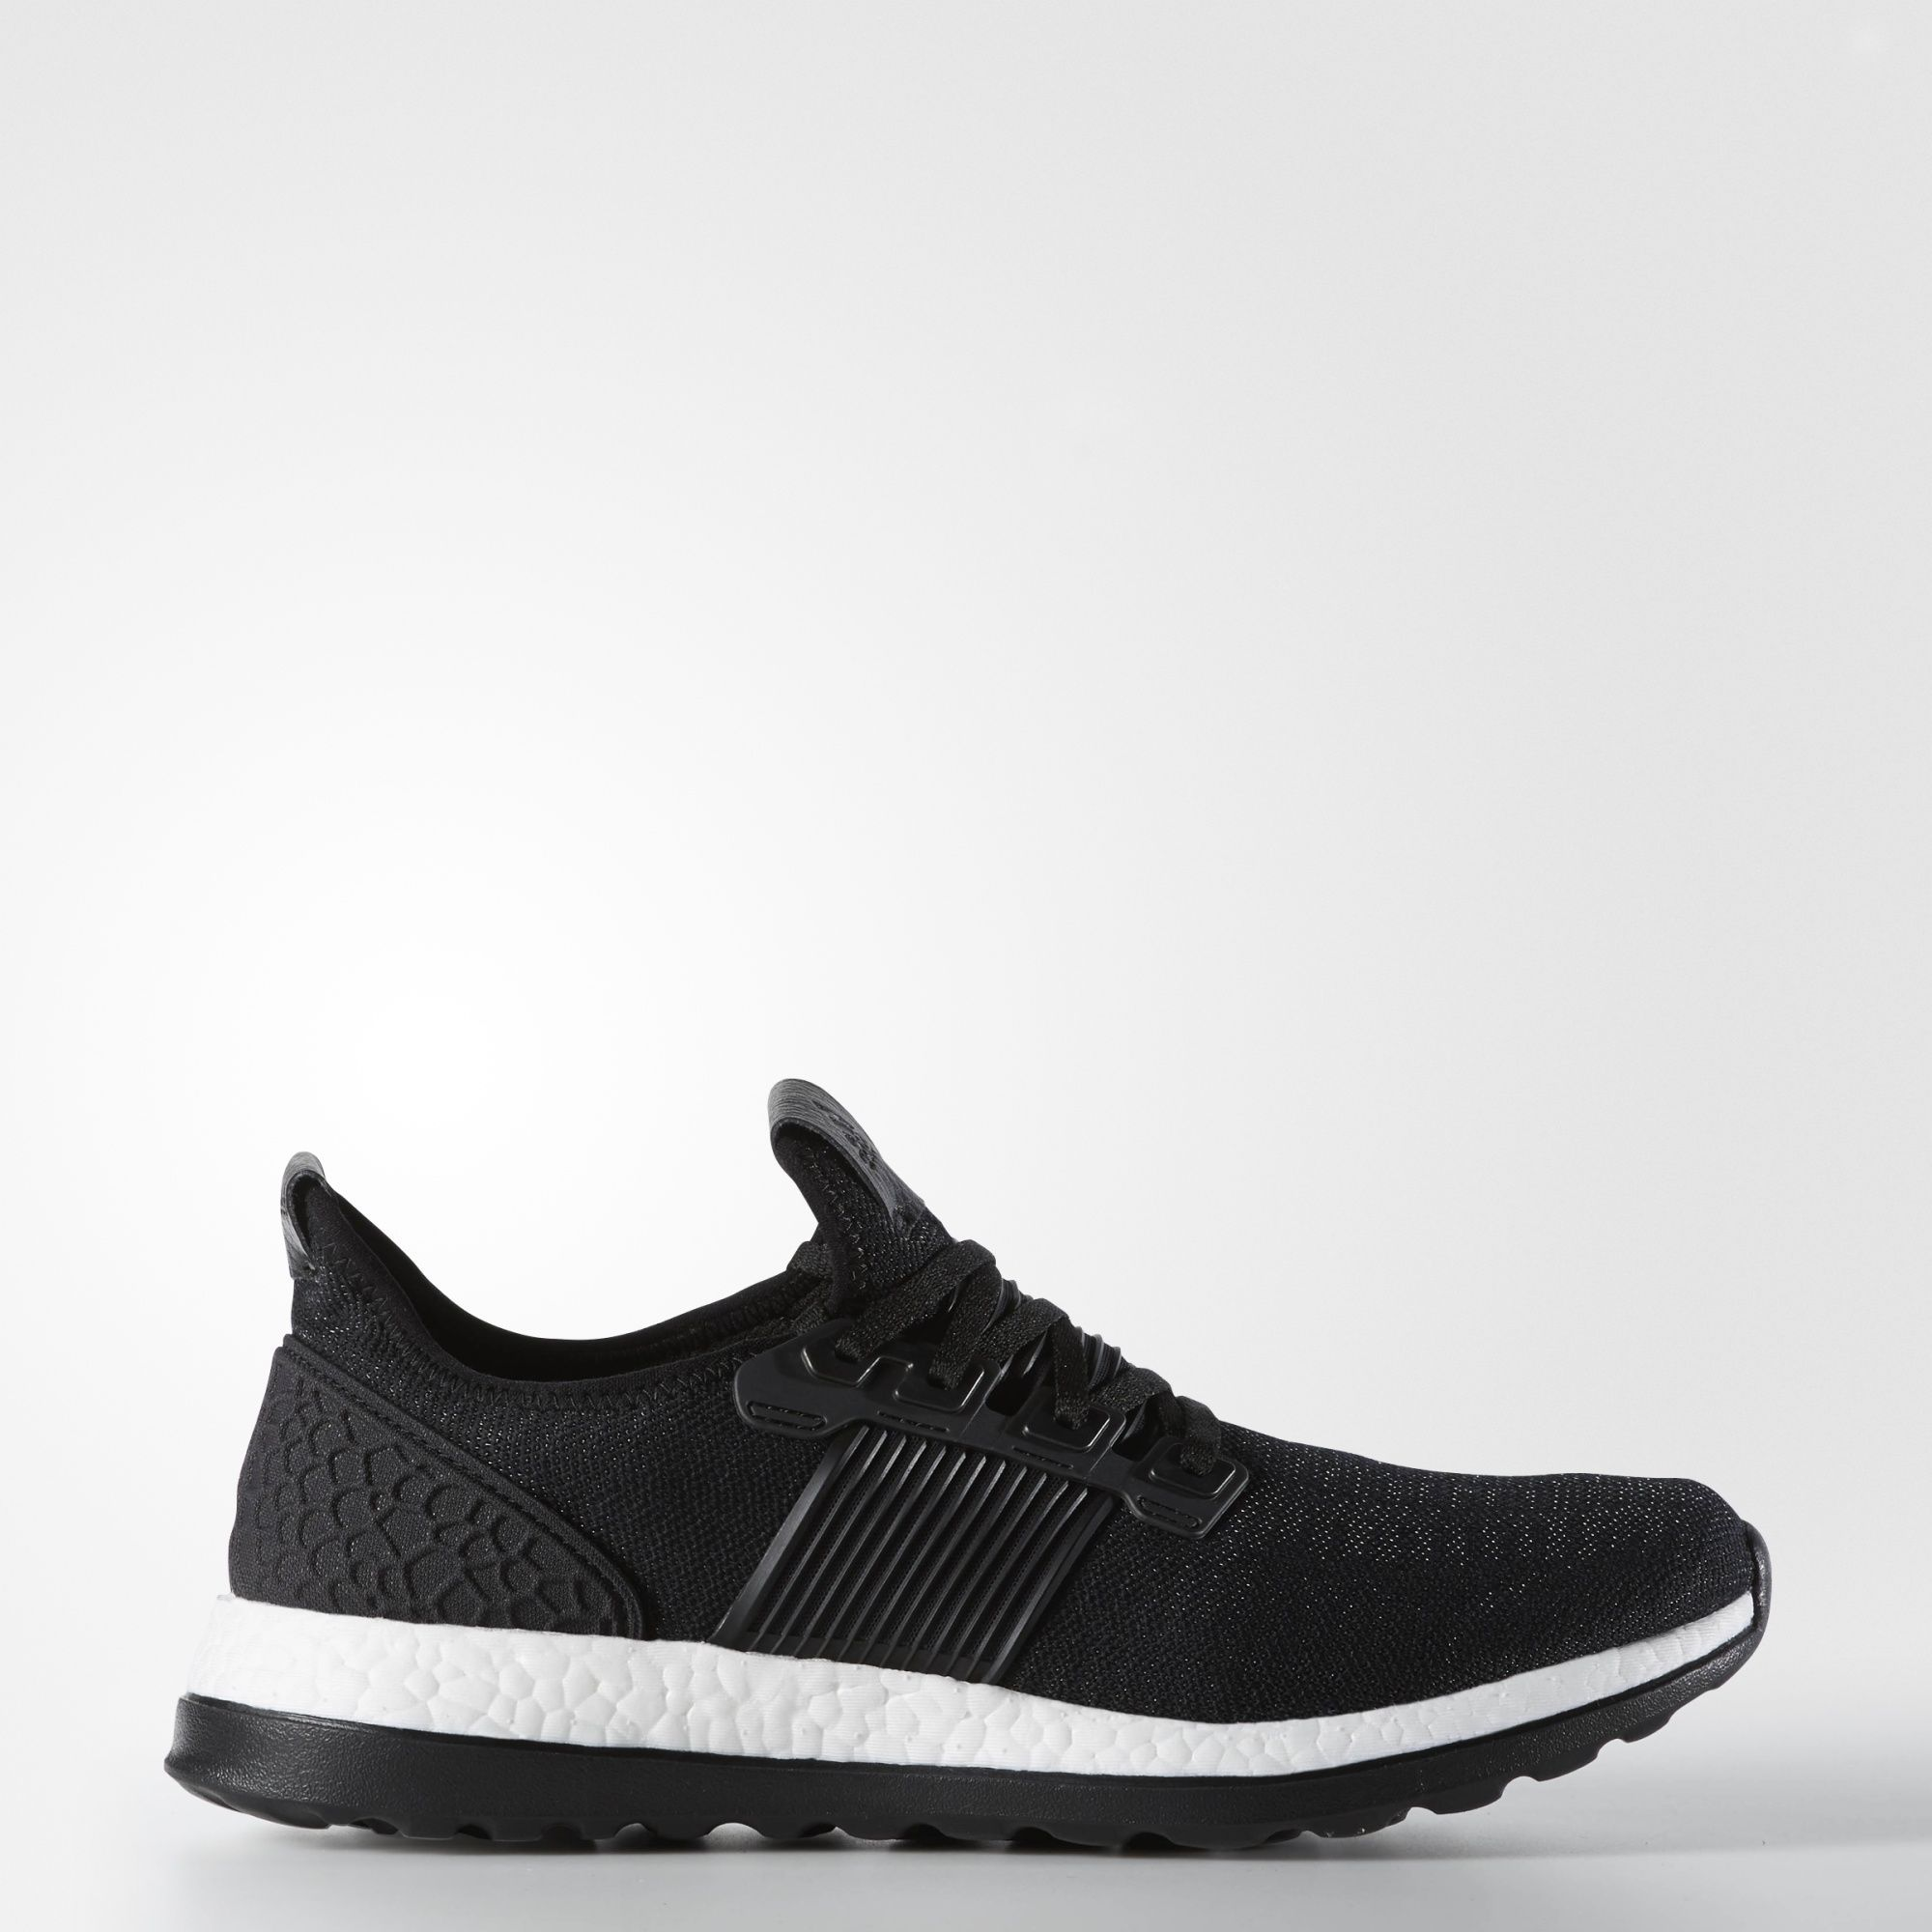 Adidas Originals Pure Boost Zg Raw